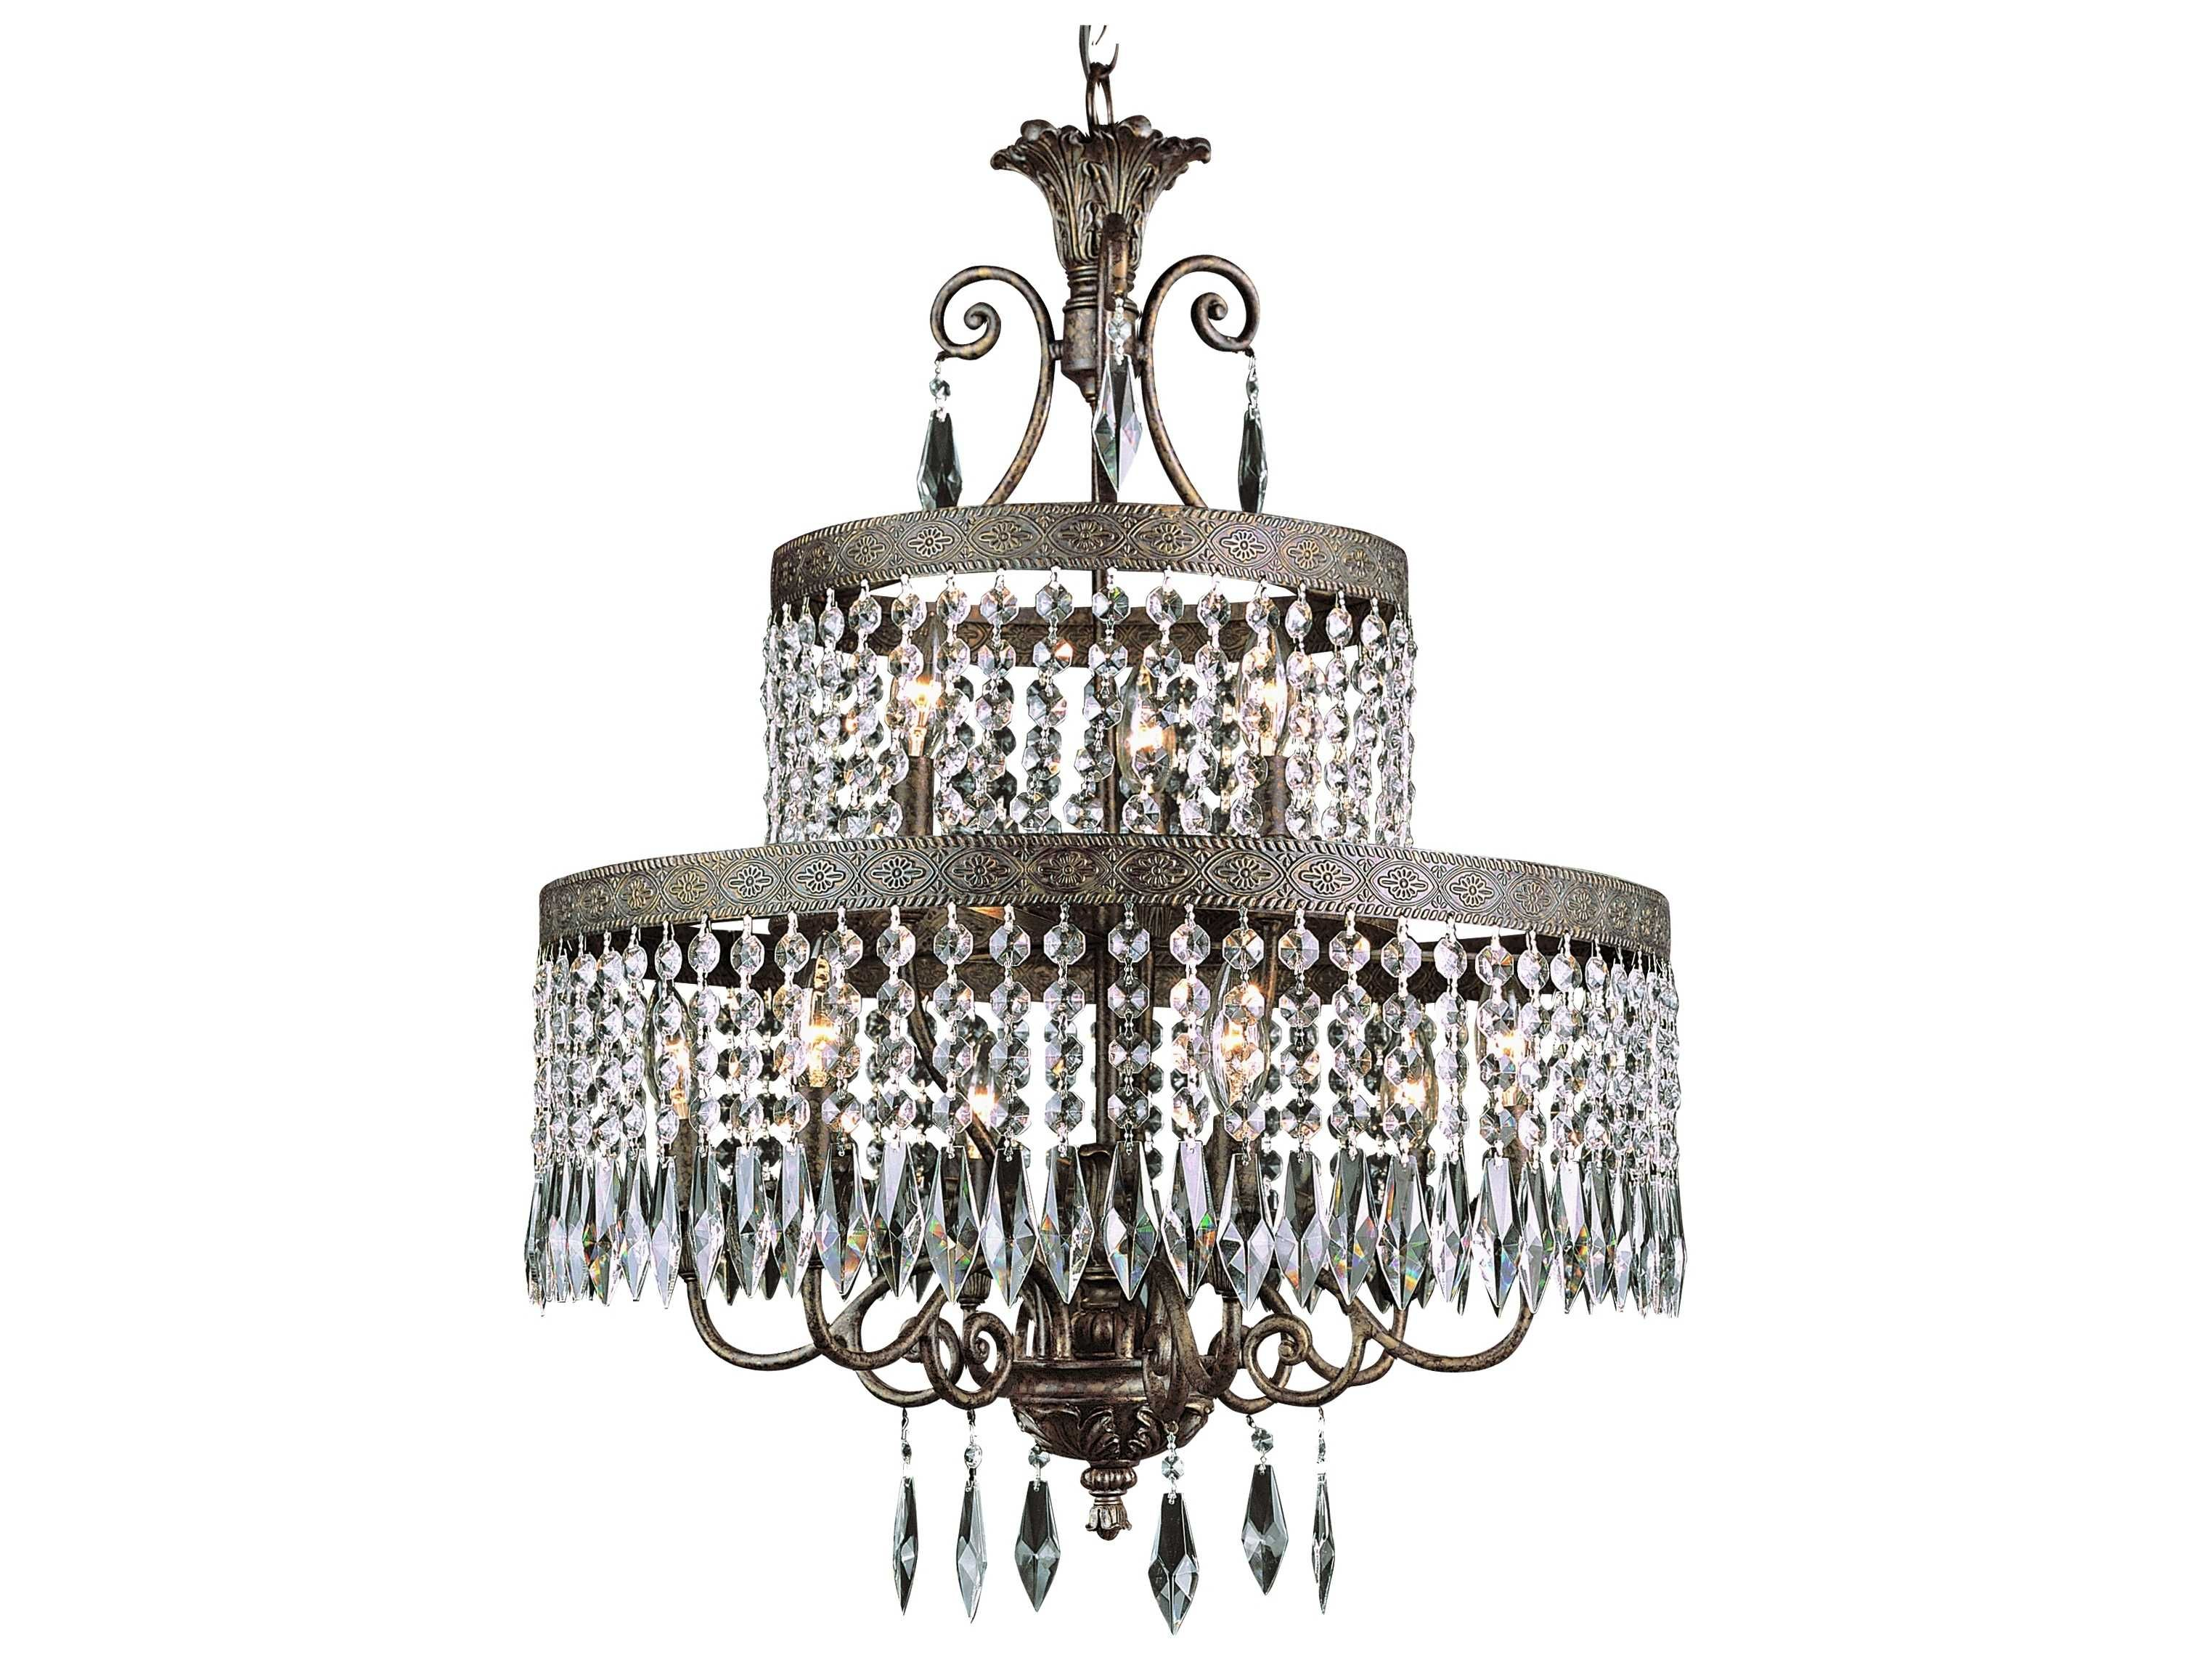 Better Price Avail Trans Globe Lighting Eclectic Boutique With Regard To Benedetto 5 Light Crystal Chandeliers (View 13 of 30)